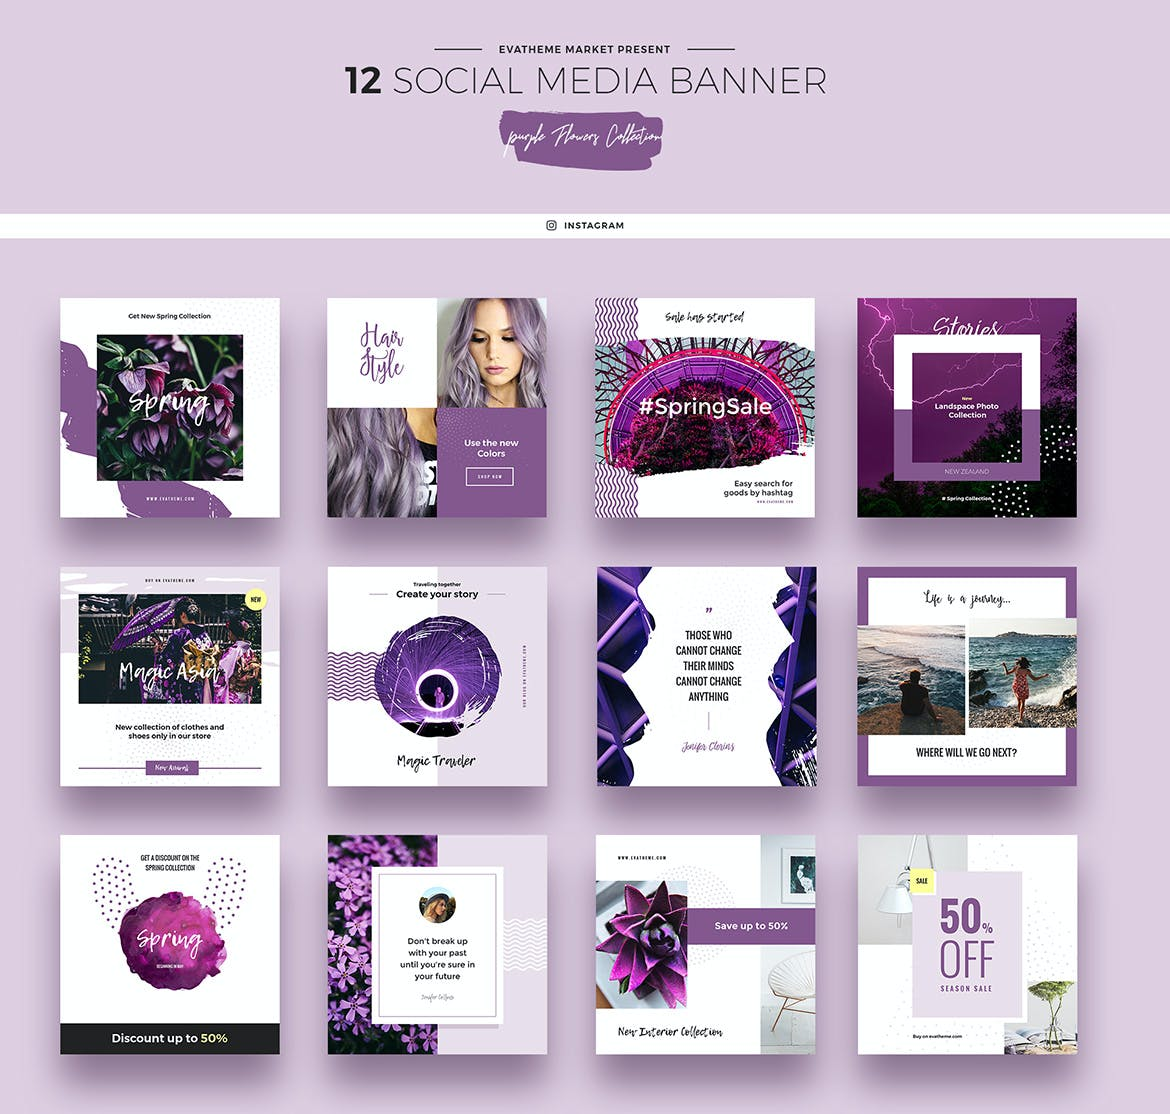 'Ultra Violet' Design Inspiration for the 2018 Pantone Color of the Year